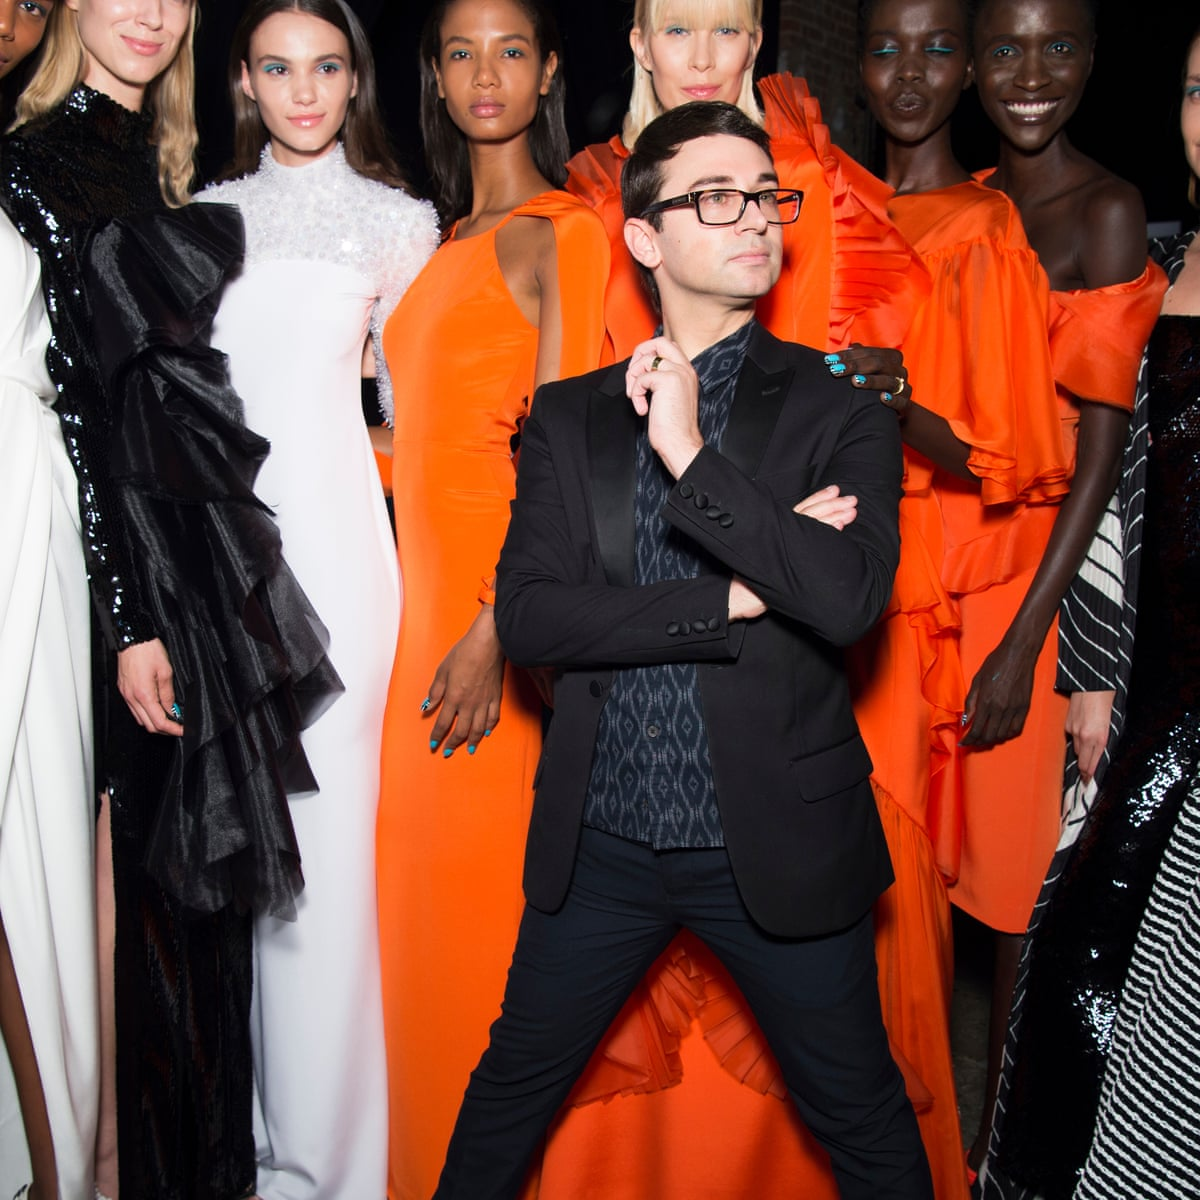 Christian Siriano I Just Assumed You Had To Dress All Women Fashion The Guardian